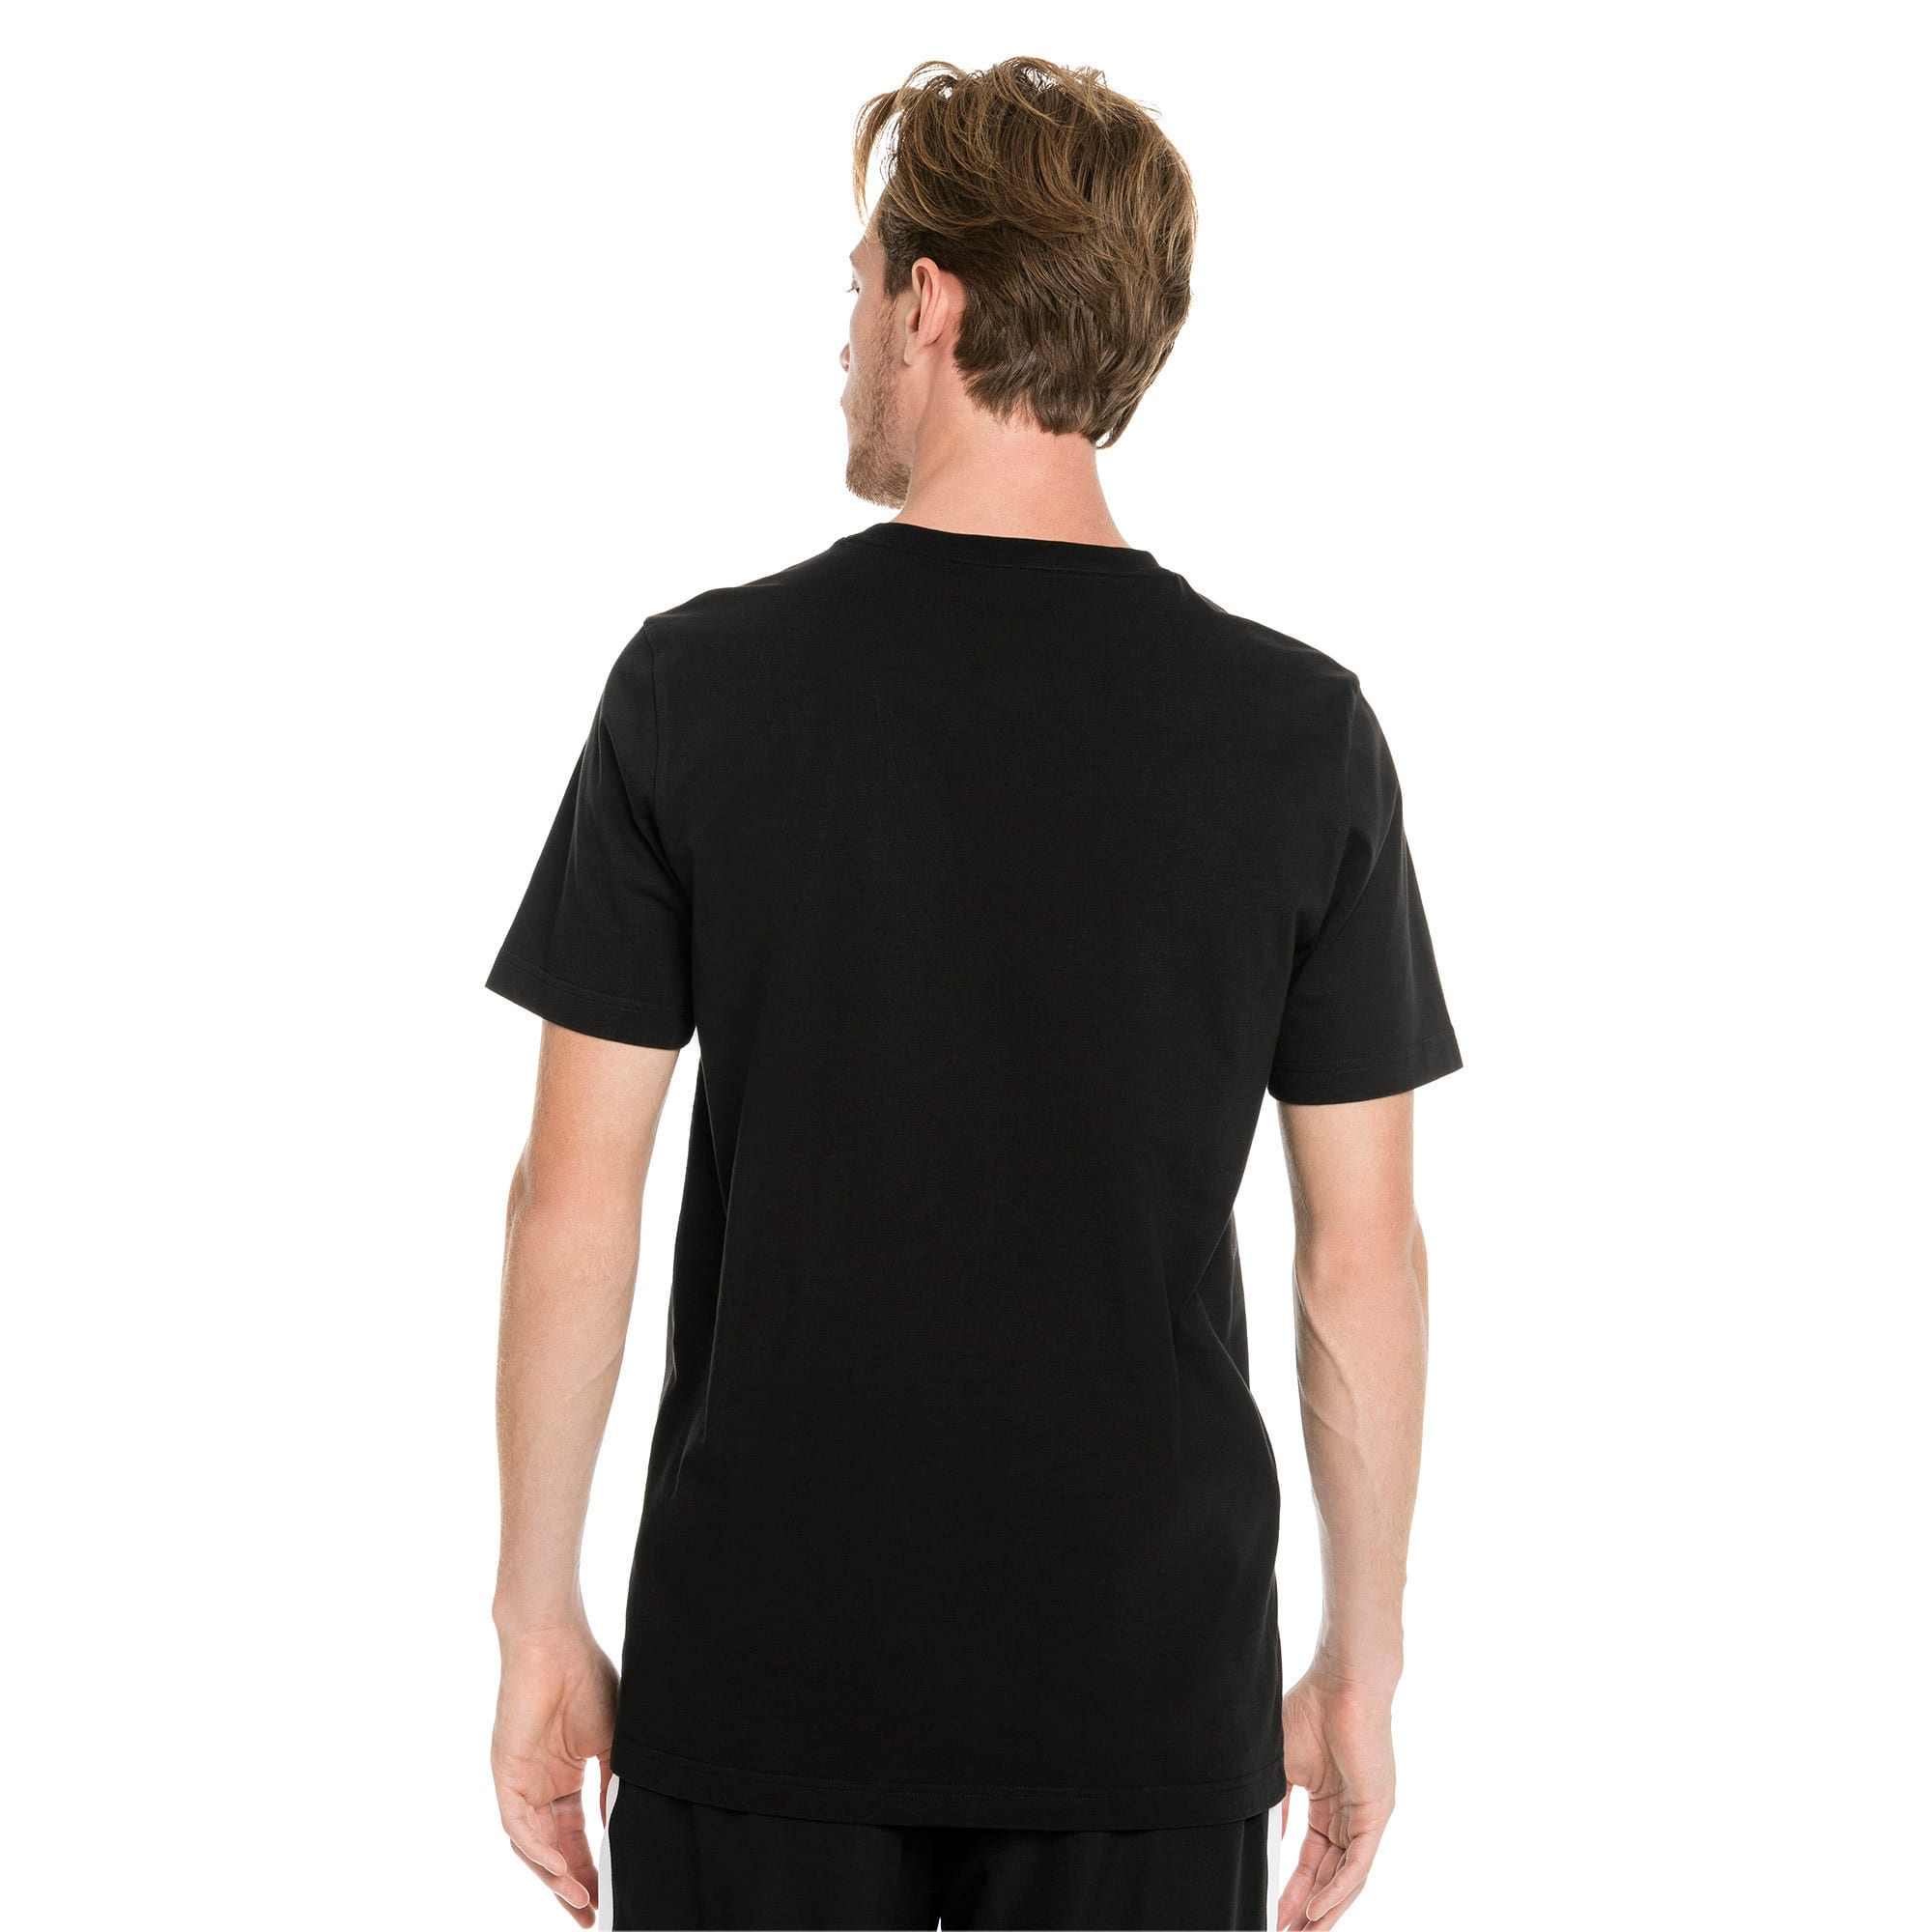 Classics Logo Short Sleeve Men's Tee, Cotton Black, large-IND